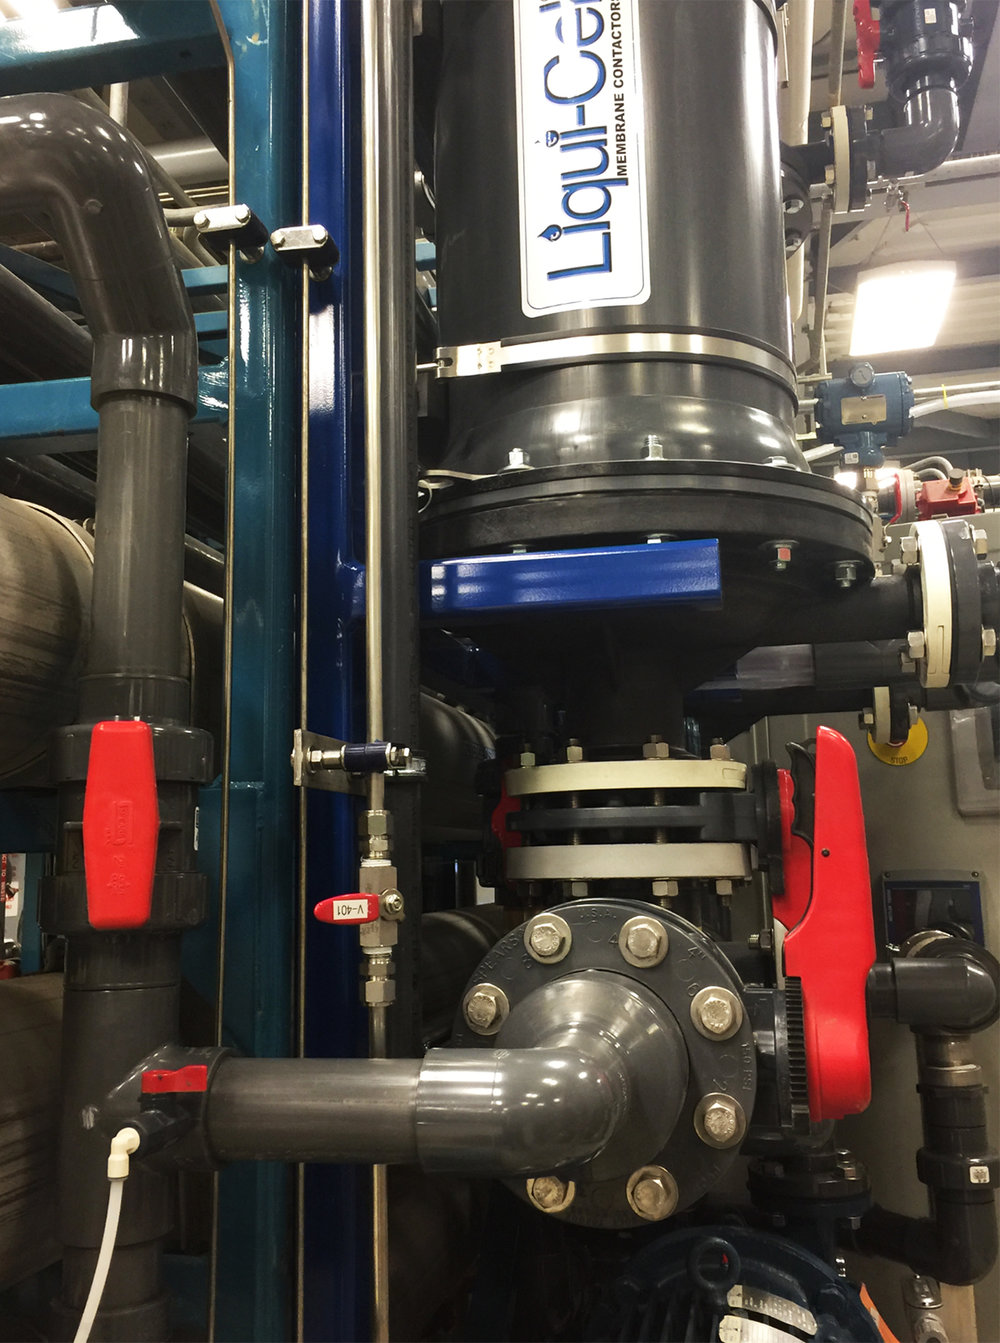 DPC_DI Water system CO2 removal_-2.jpg